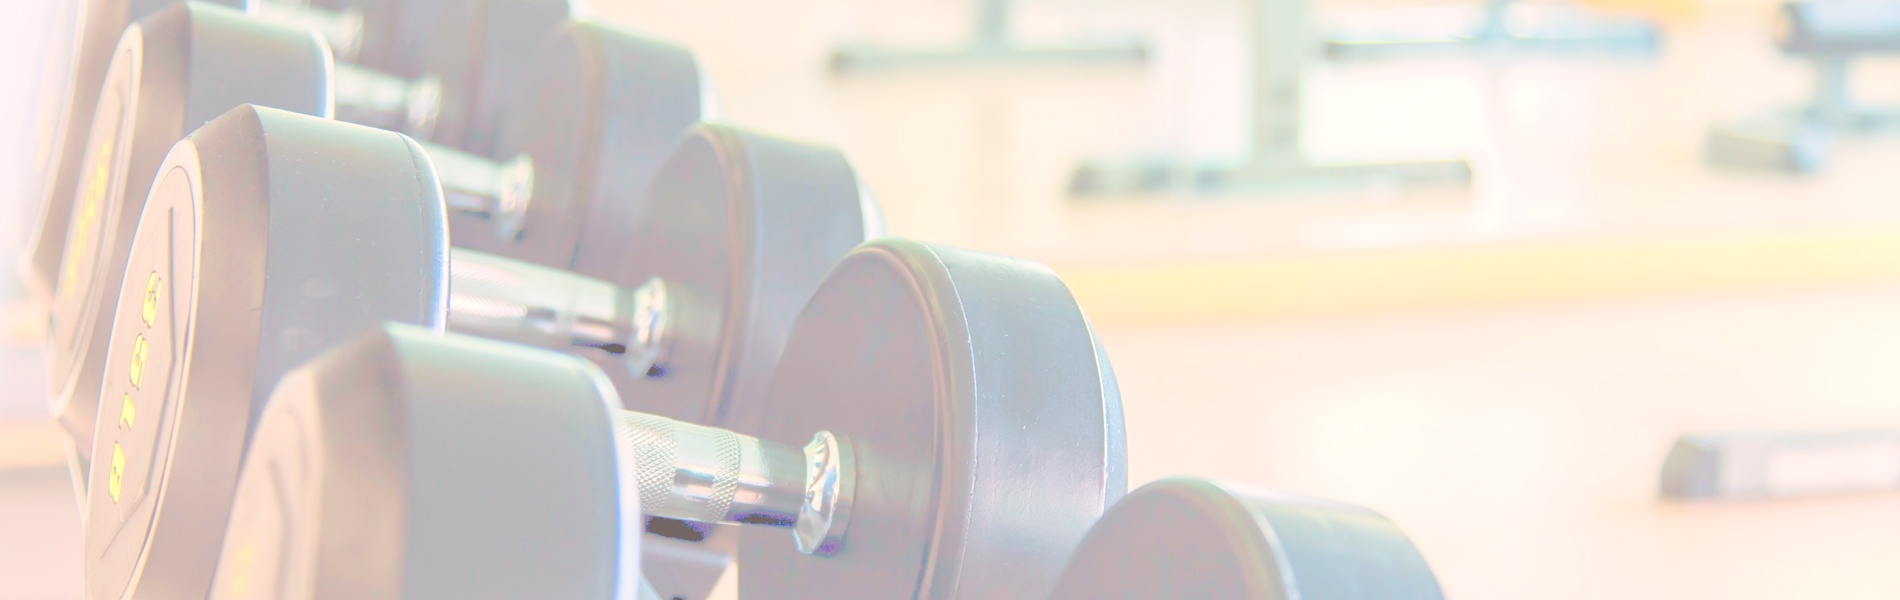 Choosing-Equipment-for-Your-Indoor-Fitness-Facility_1900x600.jpg